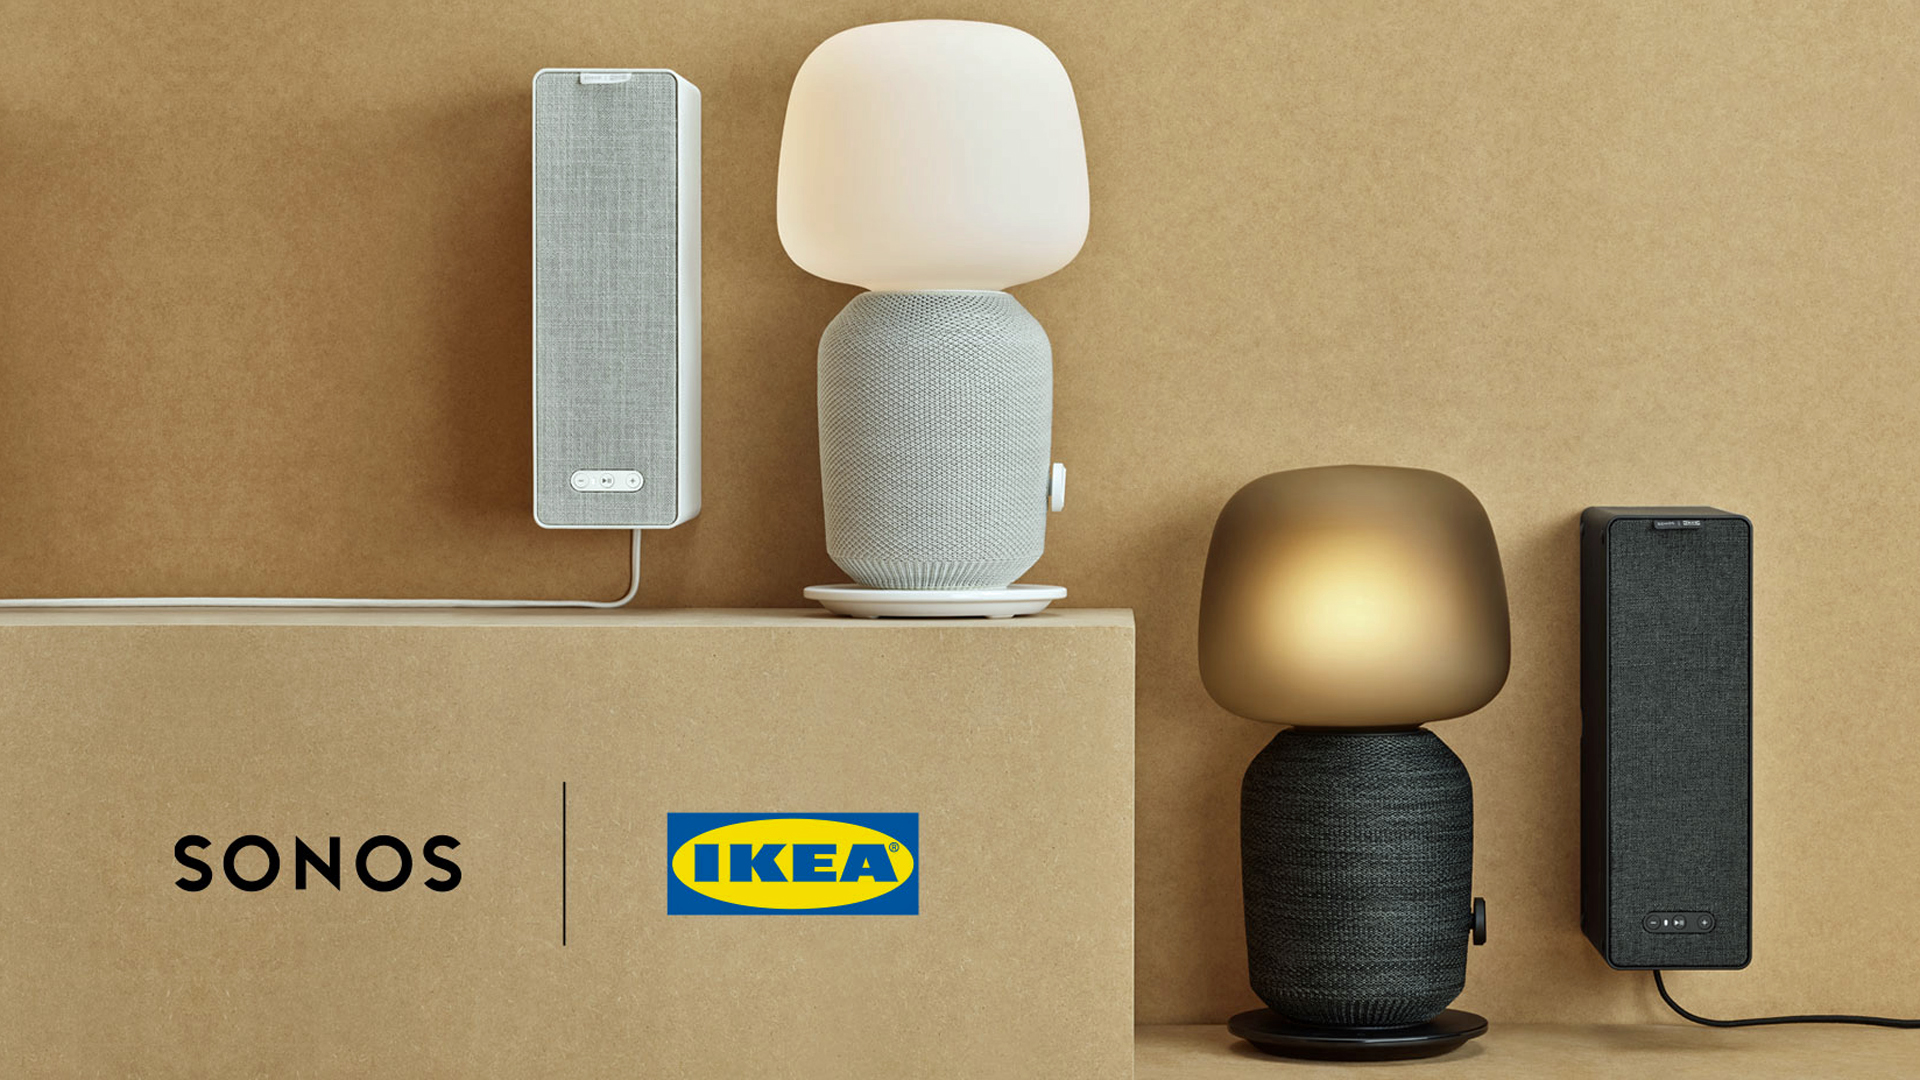 Sonos x Ikea multi room range includes